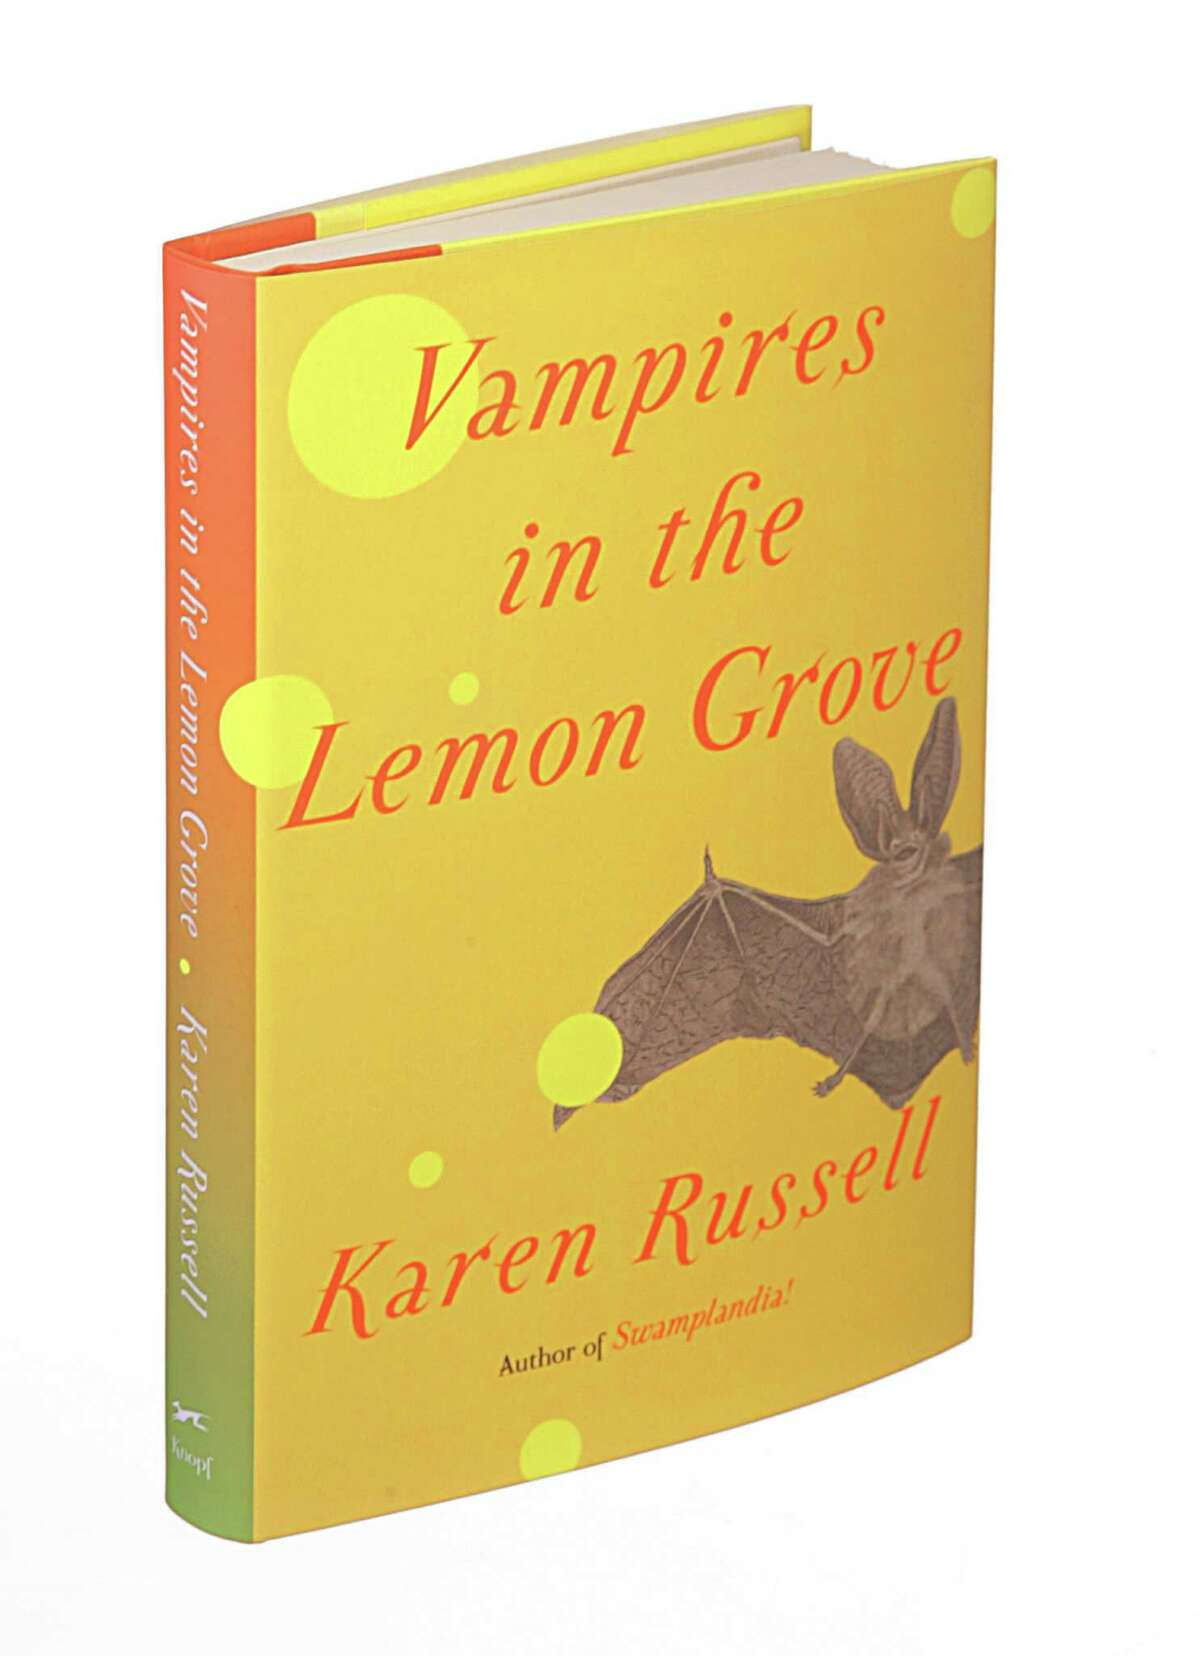 """Karen Russell also is the author of """"Swamplandia!"""""""